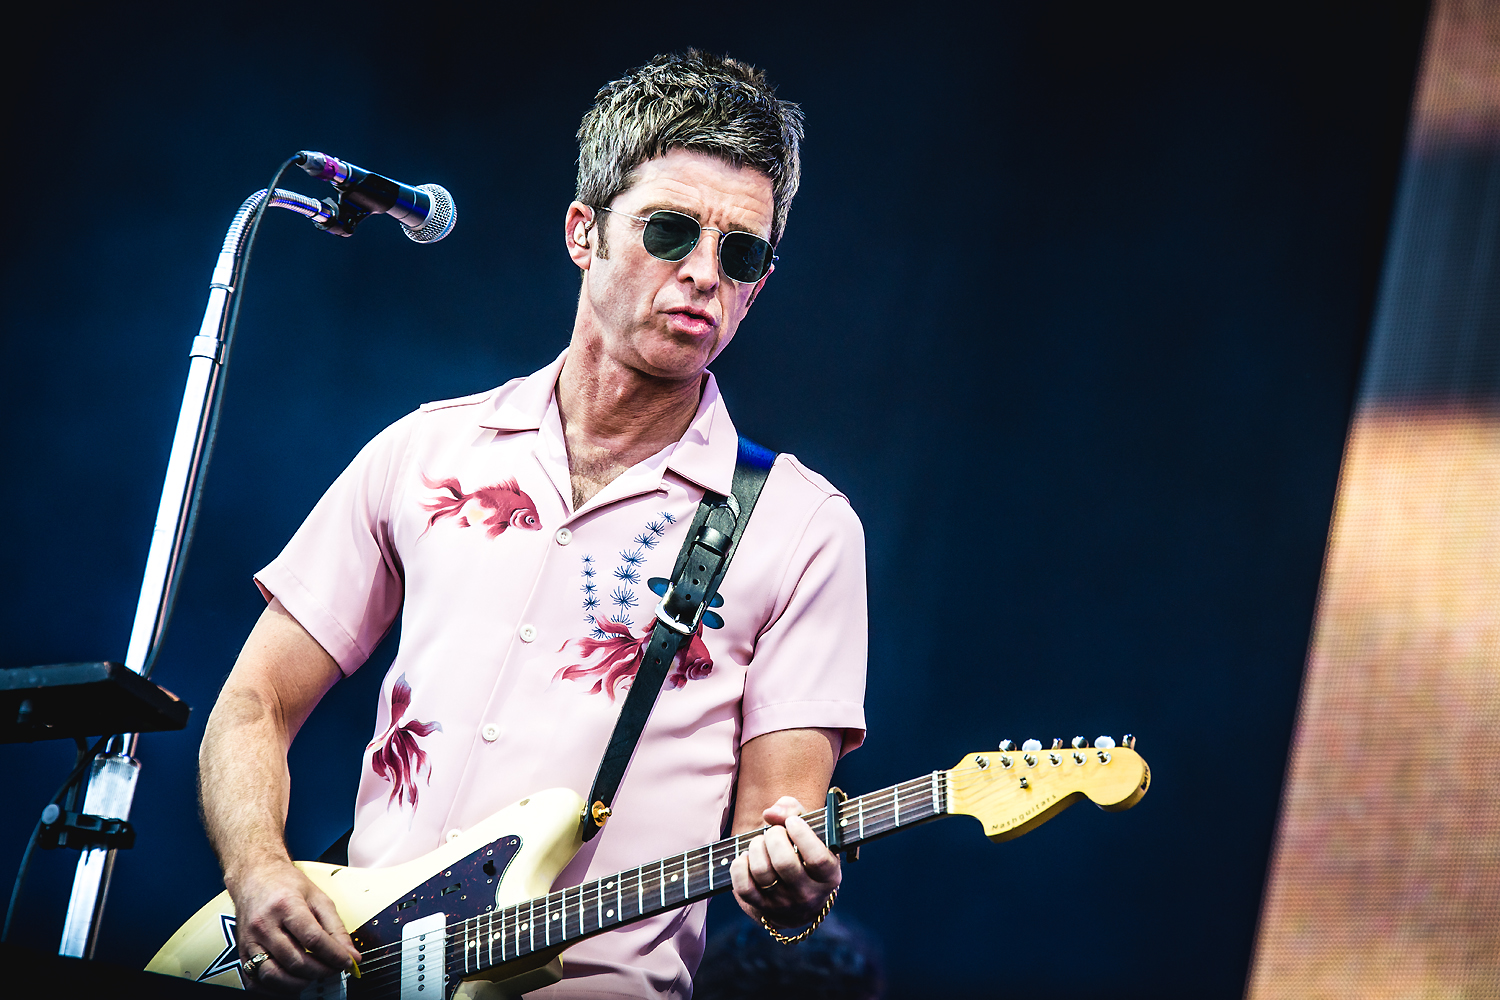 Noel Gallagher's High Flying Birds @ Rock Werchter 2018 (Jan Van den Bulck)